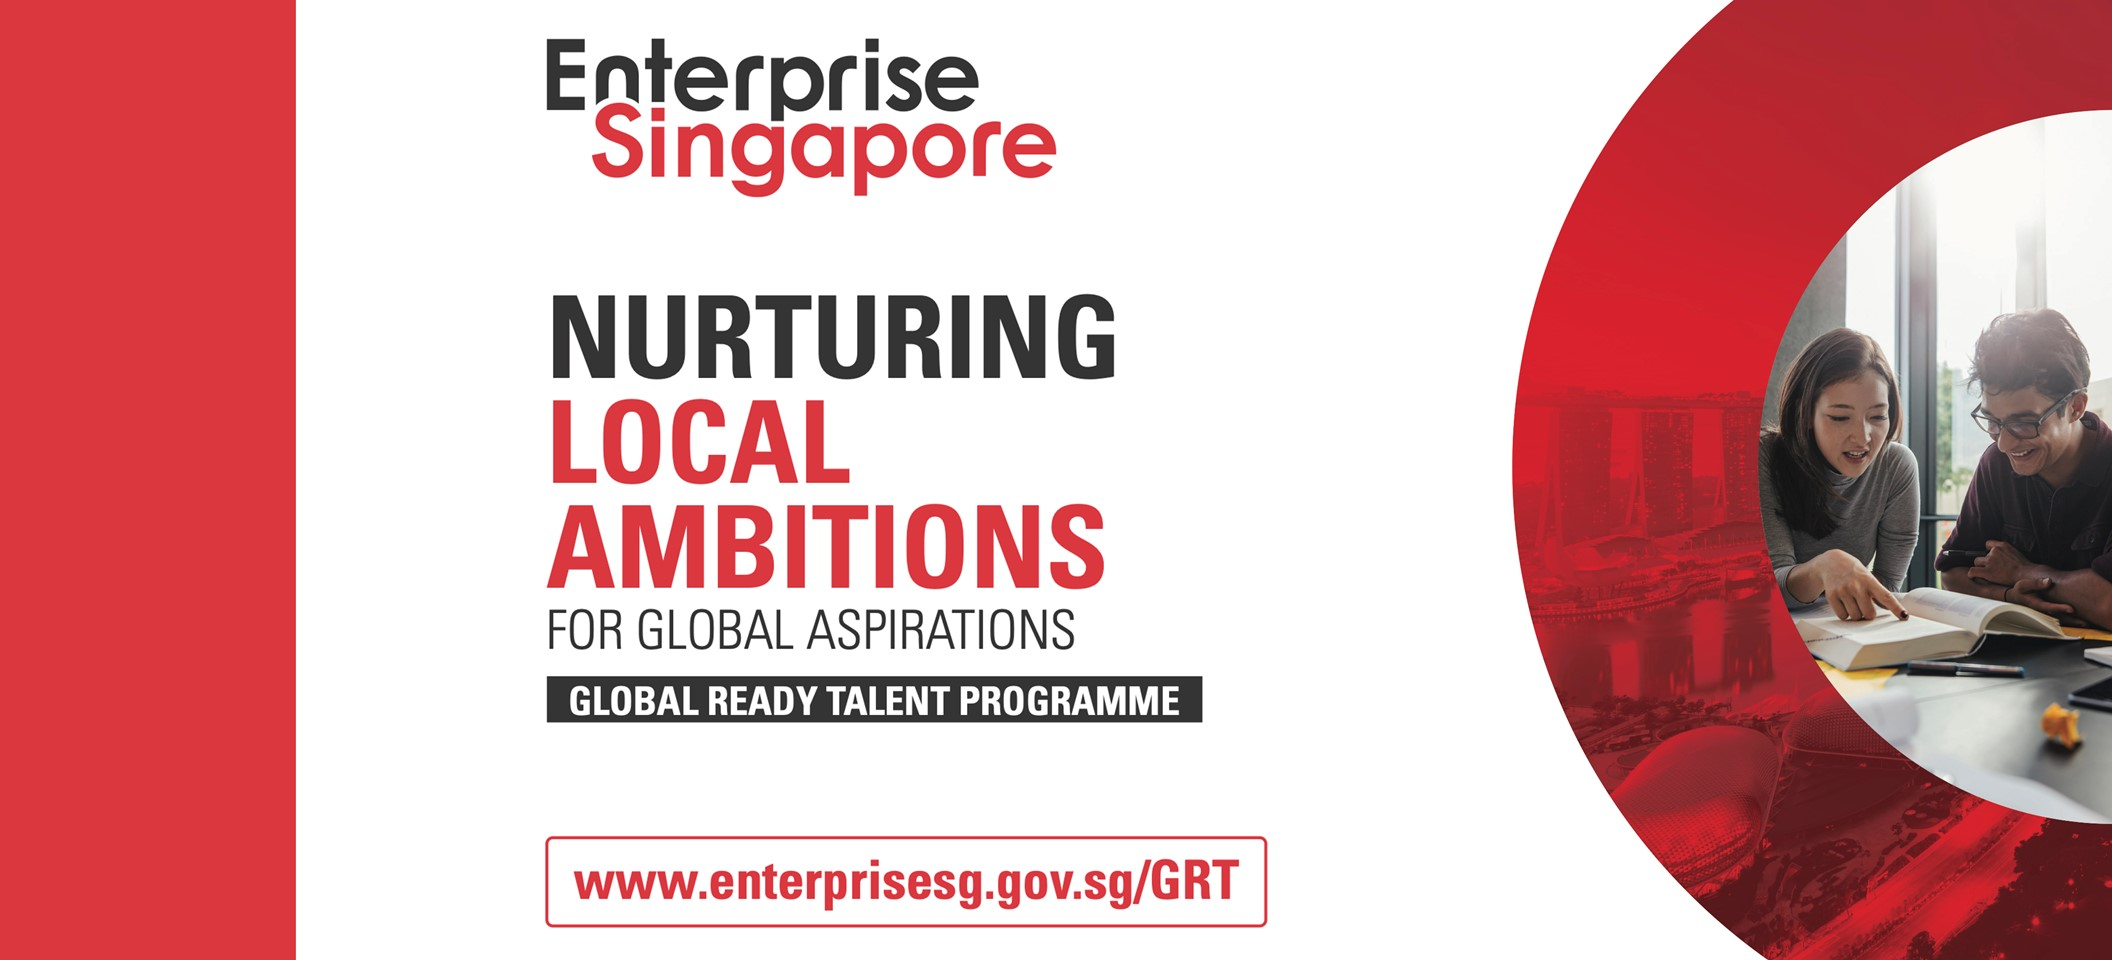 Global Ready Talent Programme (GRT)